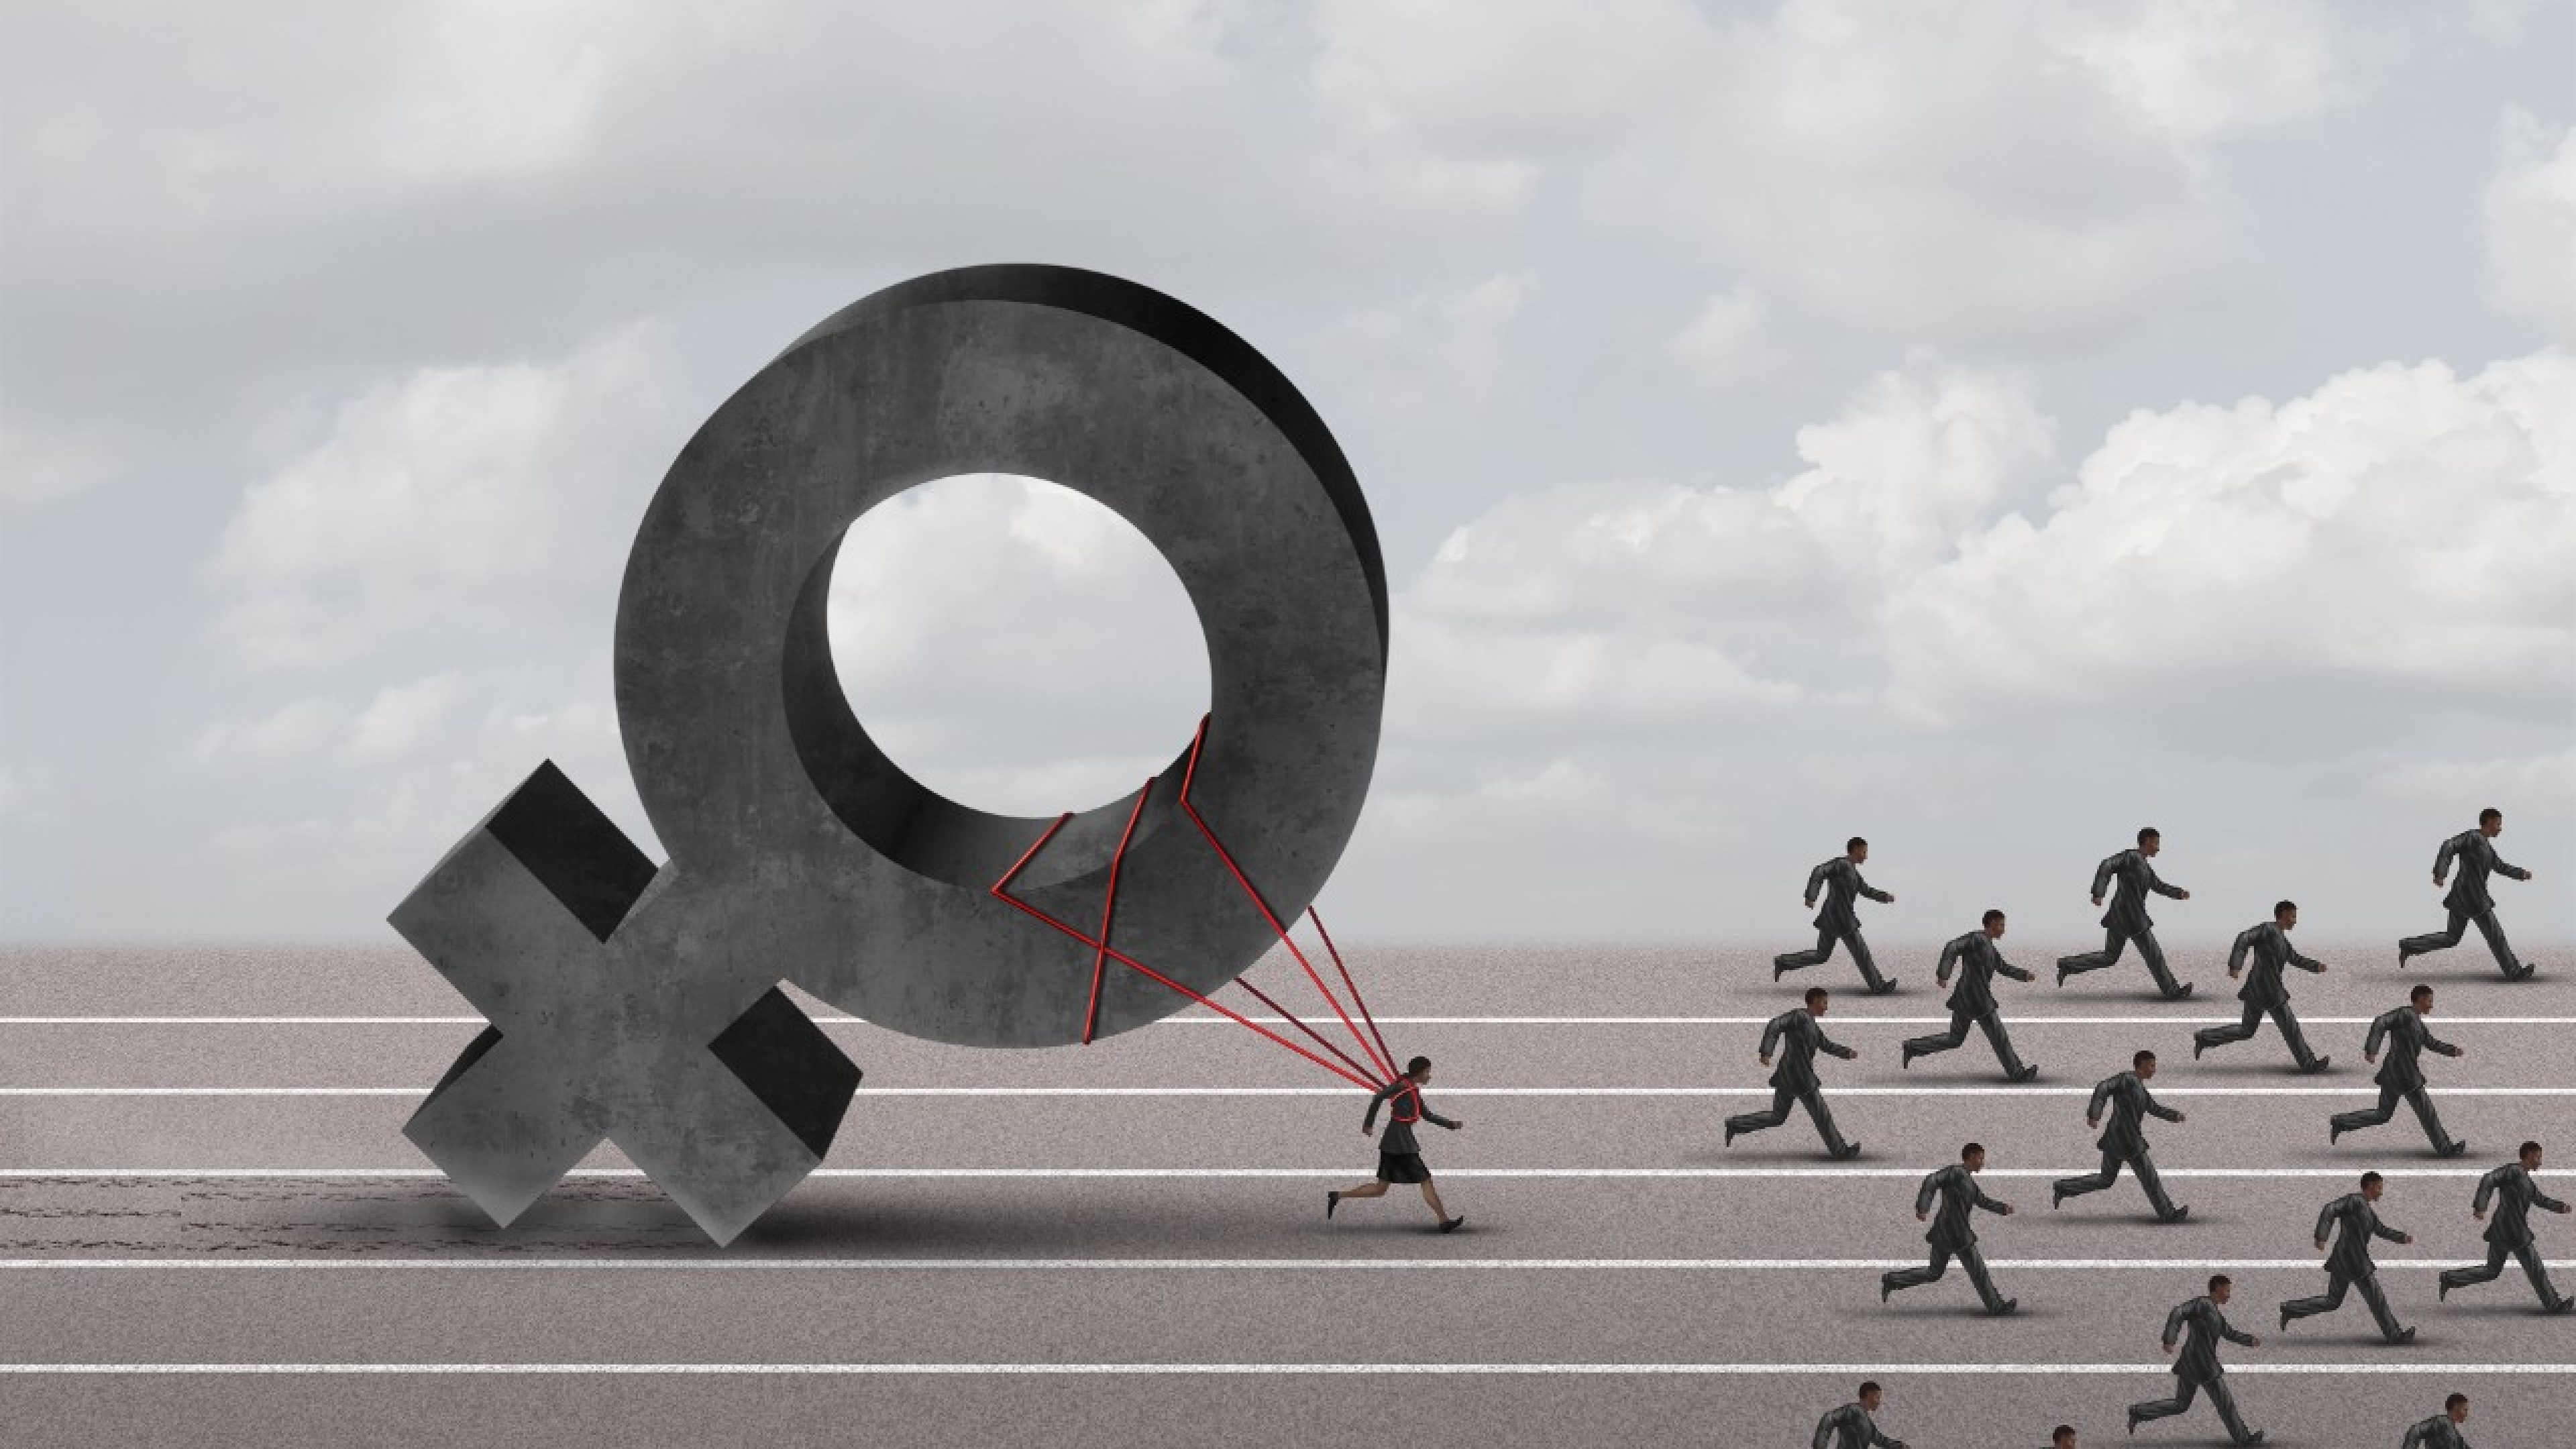 Sexism descrimination concept as a struggling woman with the burden of pulling a heavy female 3D illustration symbol falling behind a group of running businessmen or men as an unfair gender bias icon.